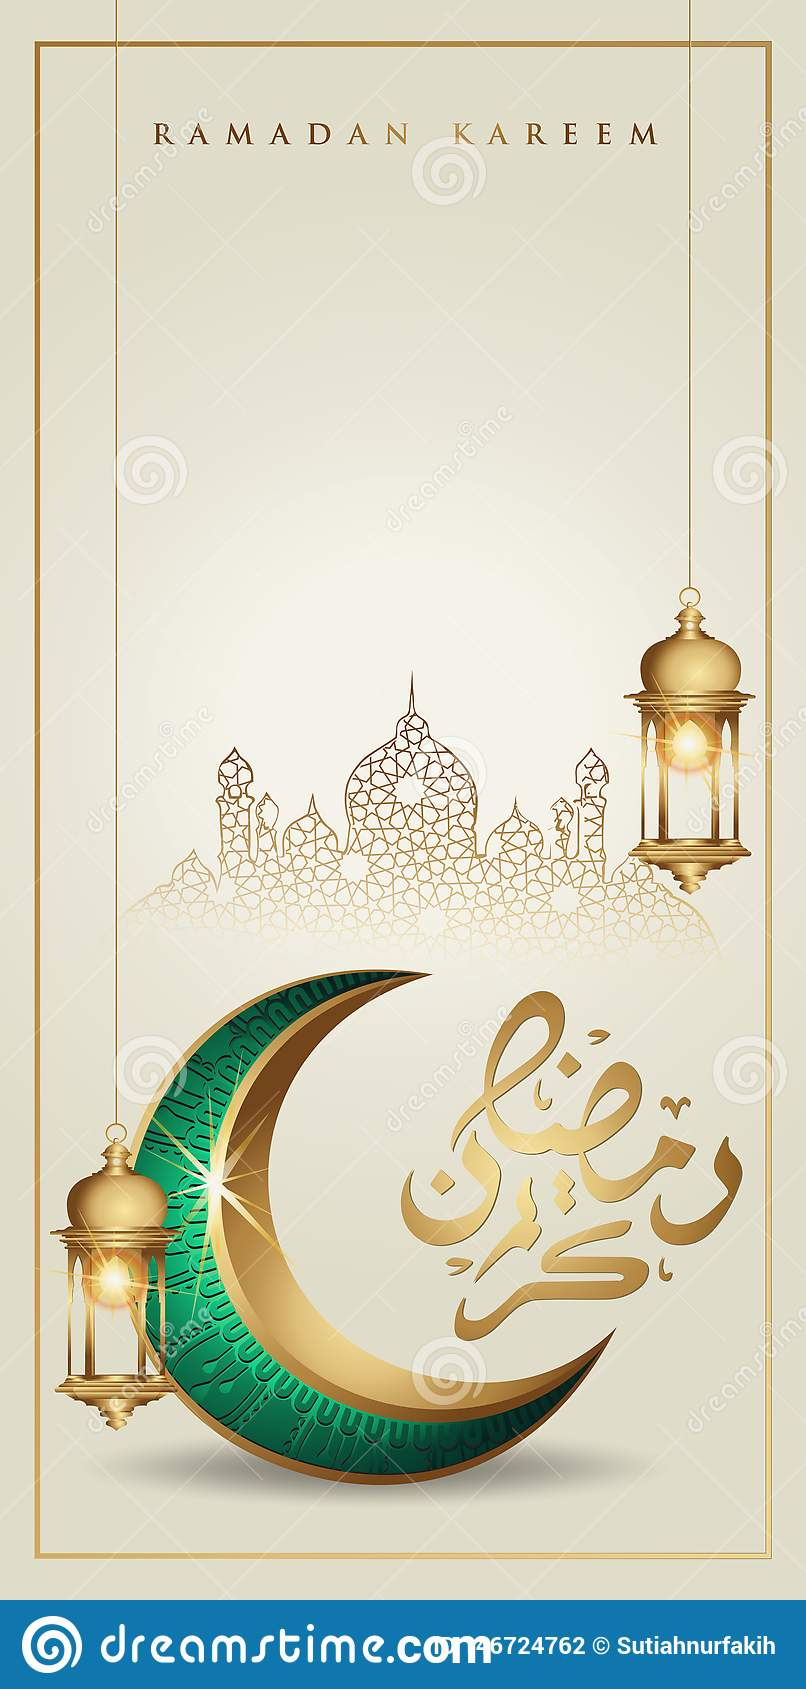 Ramadan Kareem With Golden Luxurious Crescent Moon And Traditional